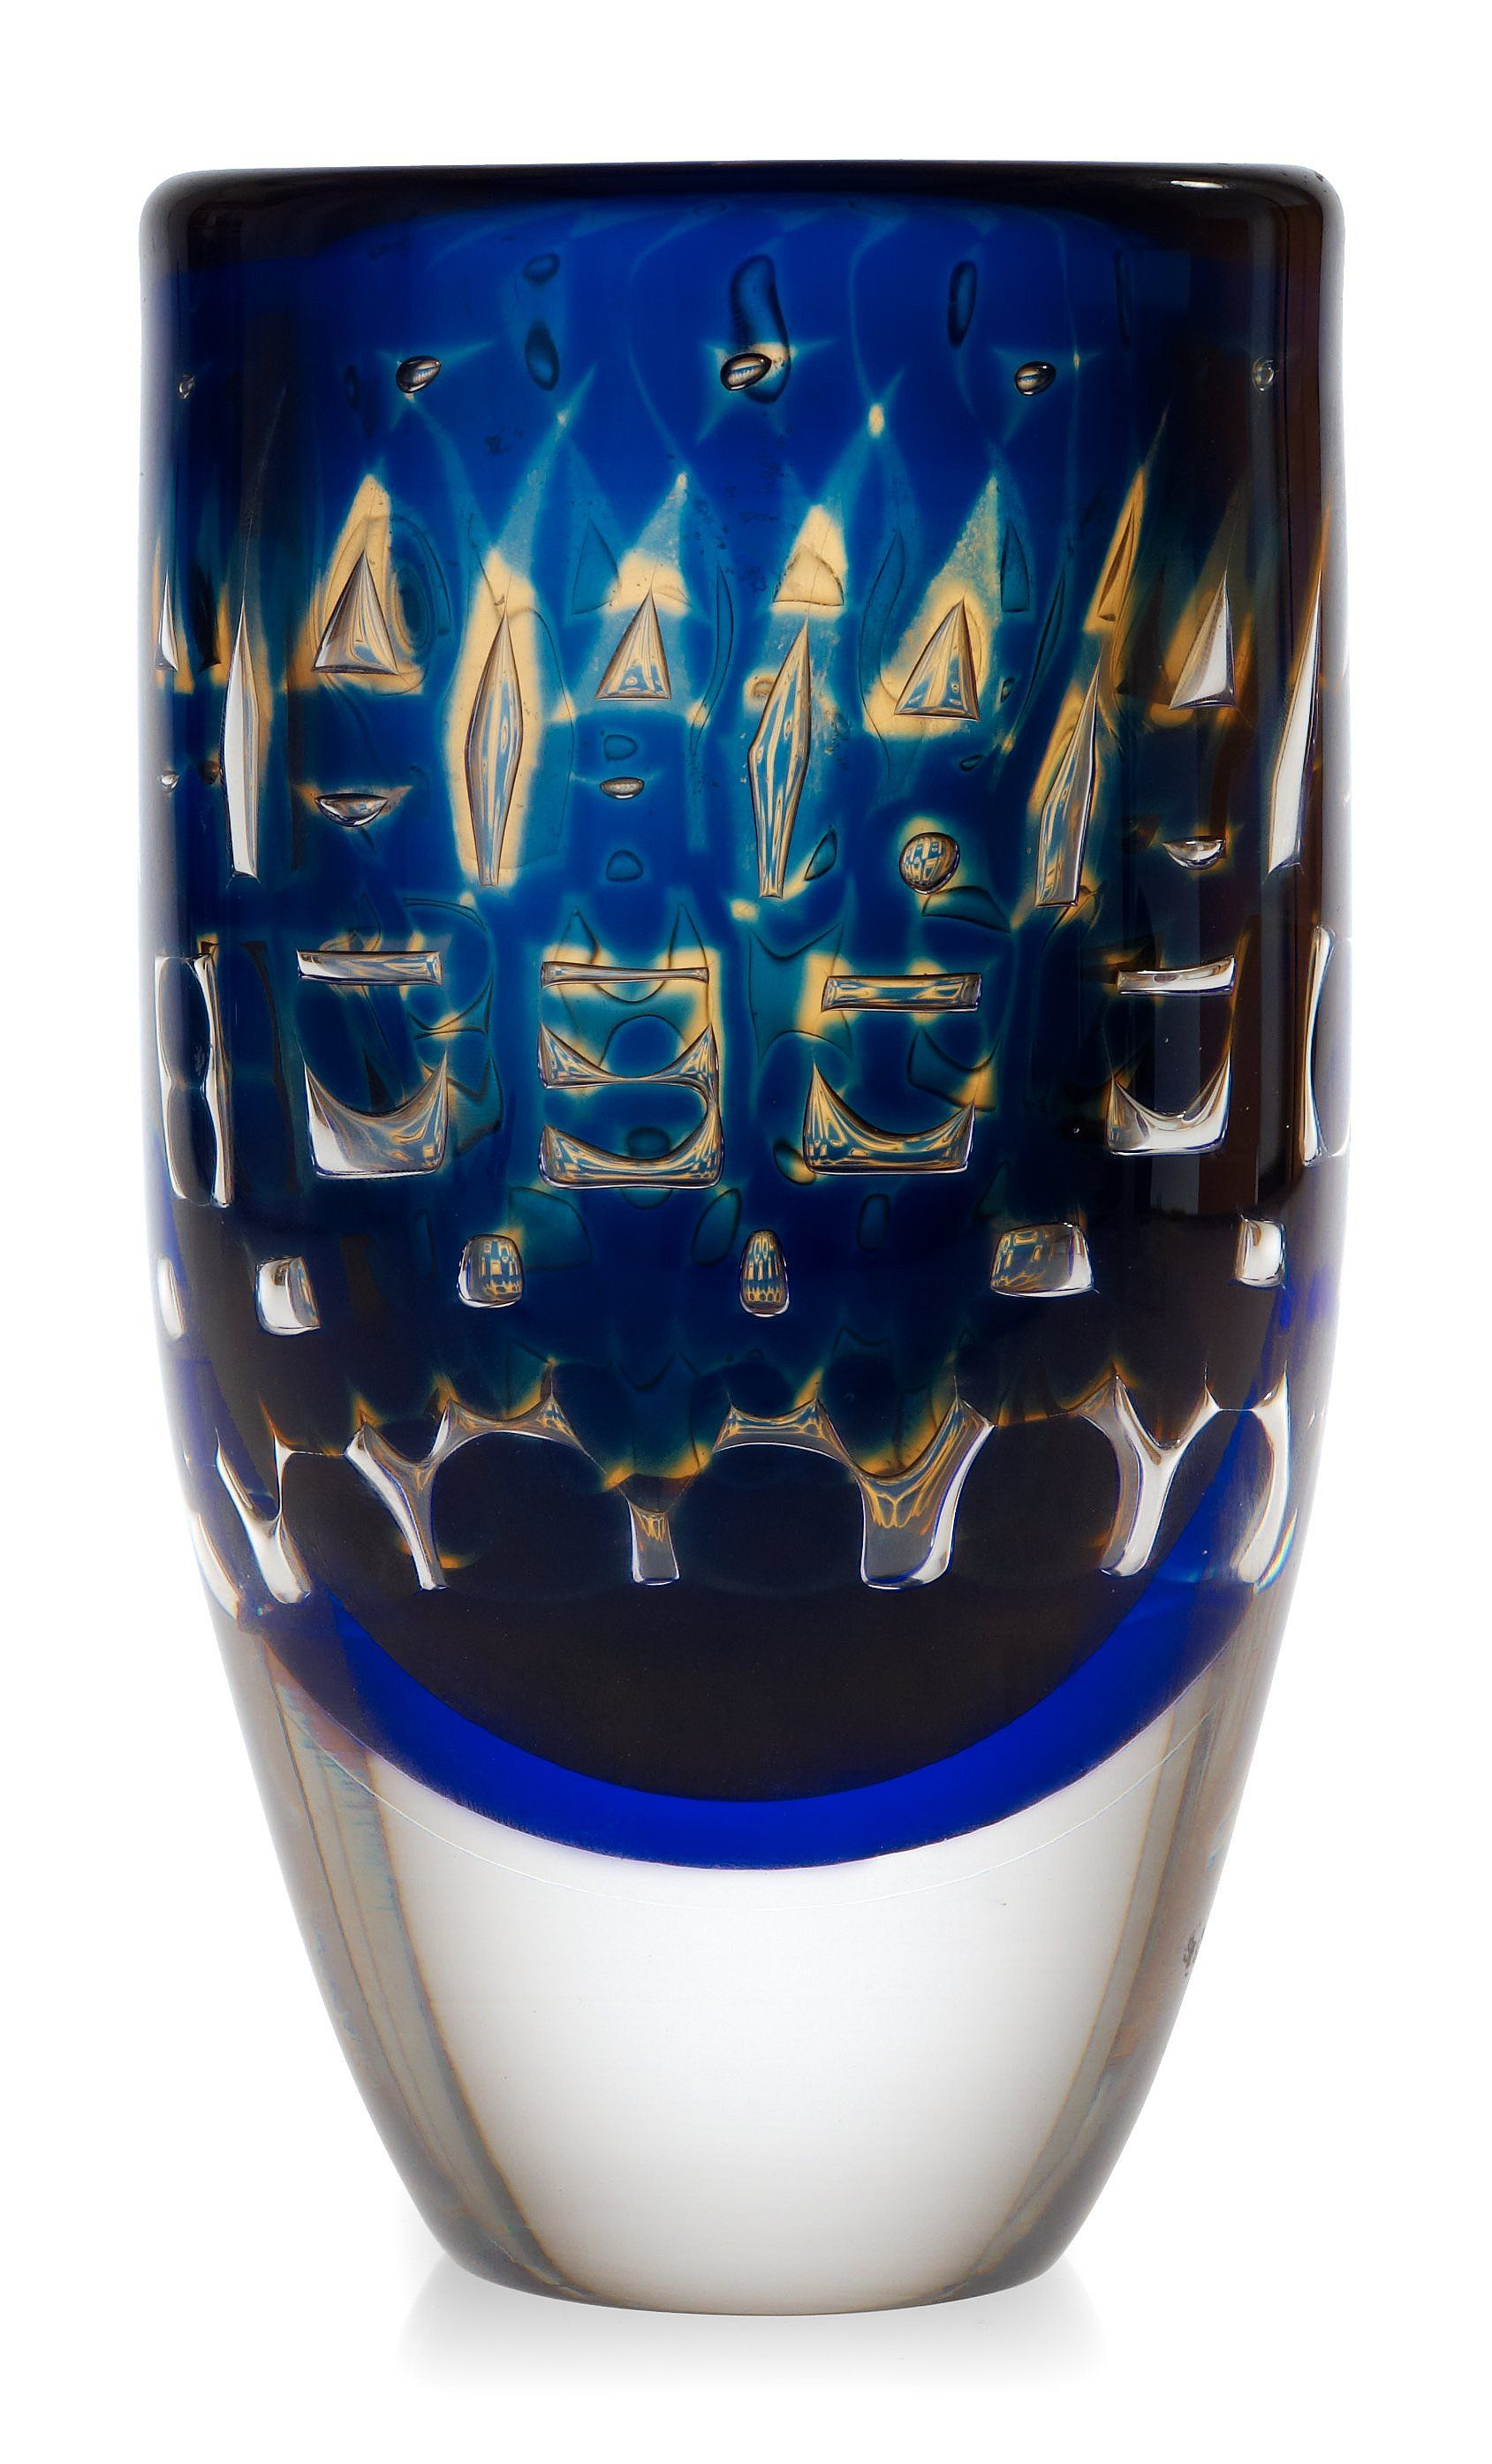 An Ingeborg Lundin 'ariel' glass vase, Orrefors 1972. Height 21 cm.